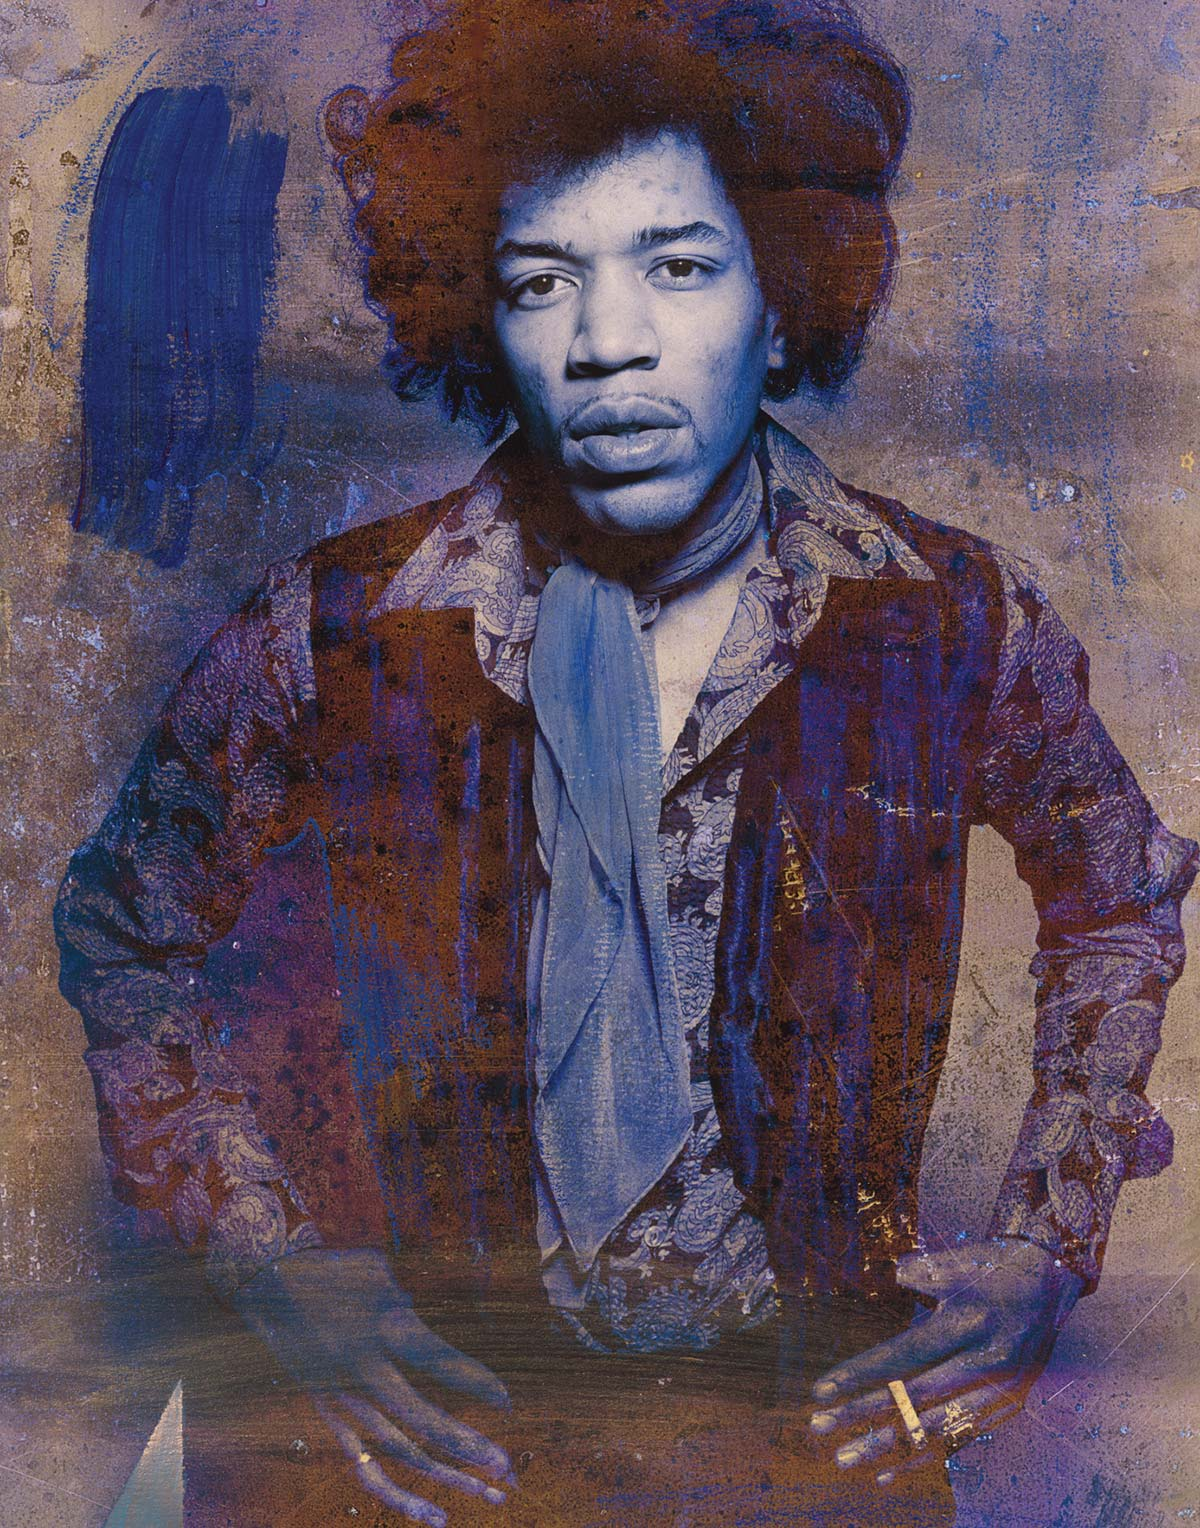 Blue Haze 2017 featuring Jimi Hendrix